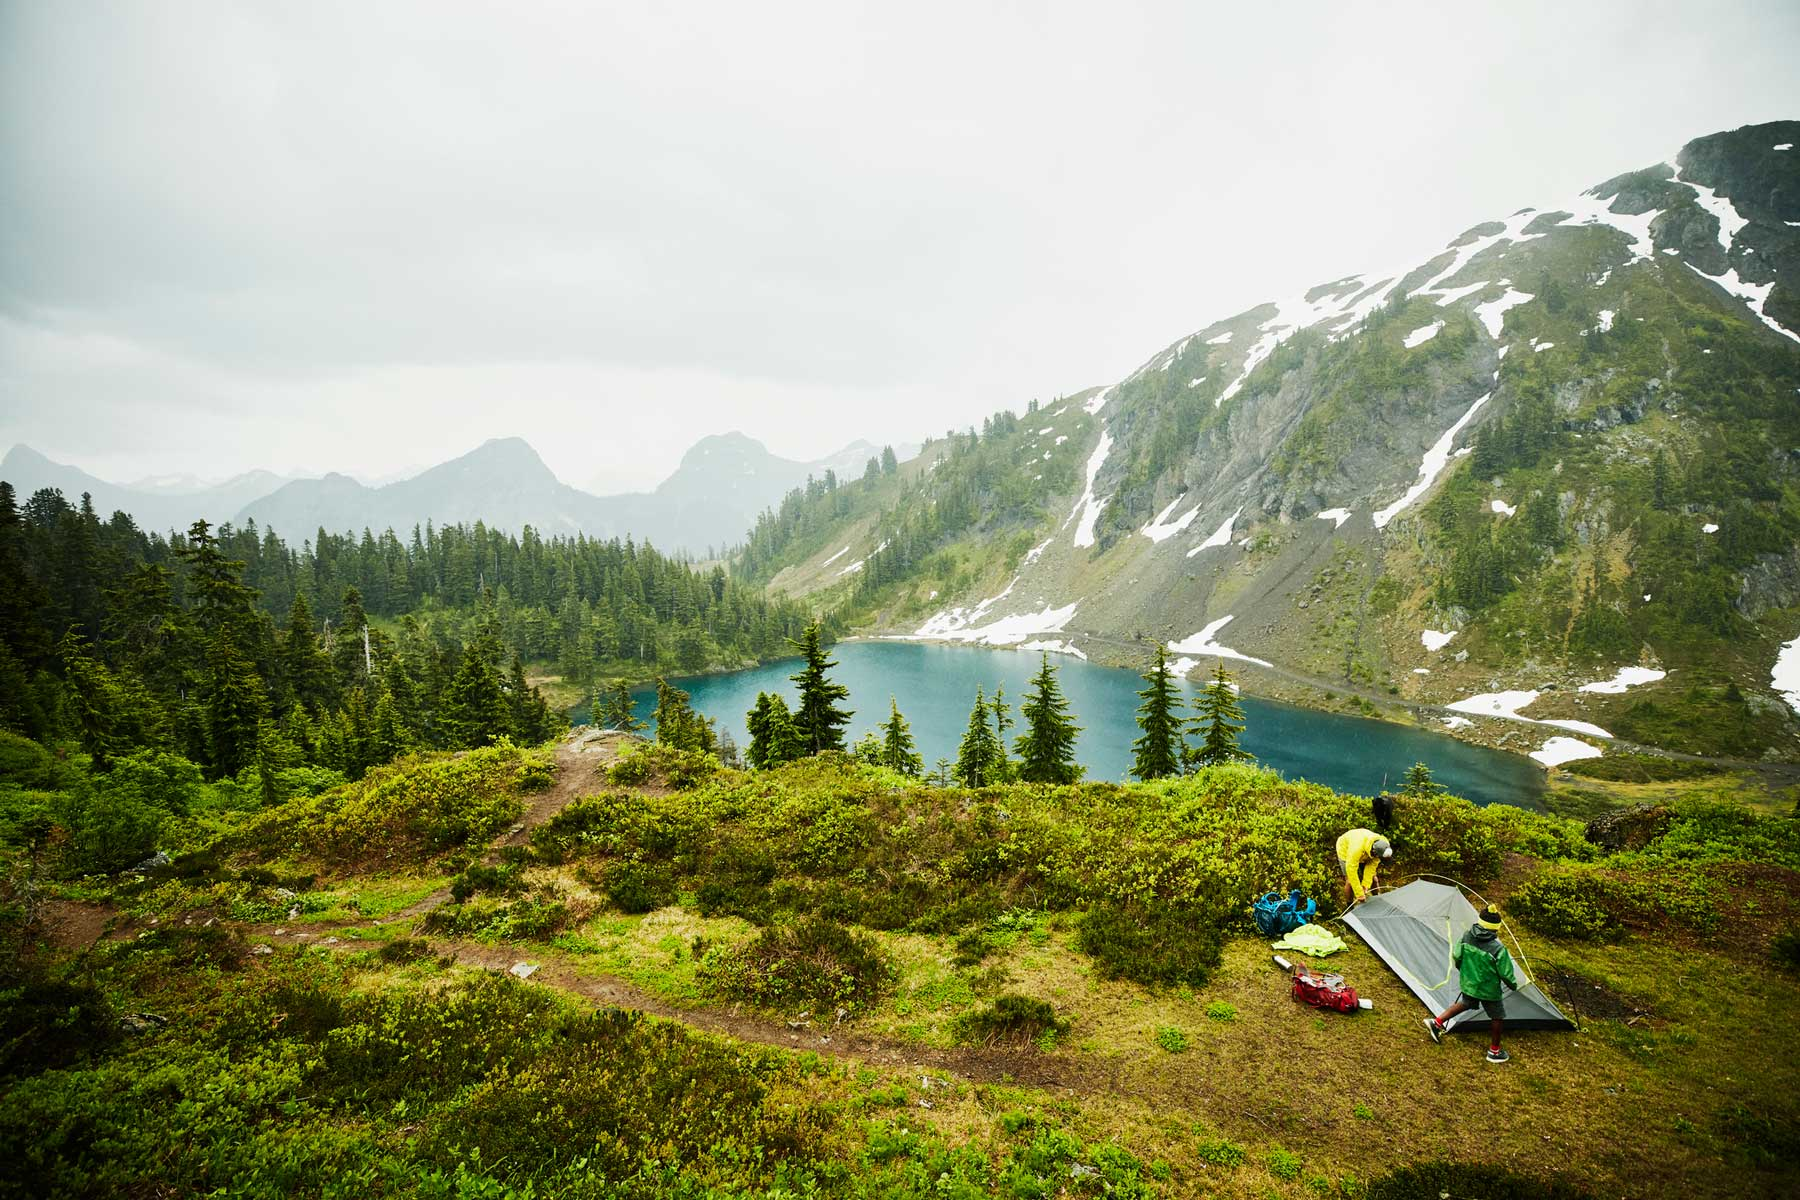 Father and son setting up tent above alpine lake during backpacking trip in rain